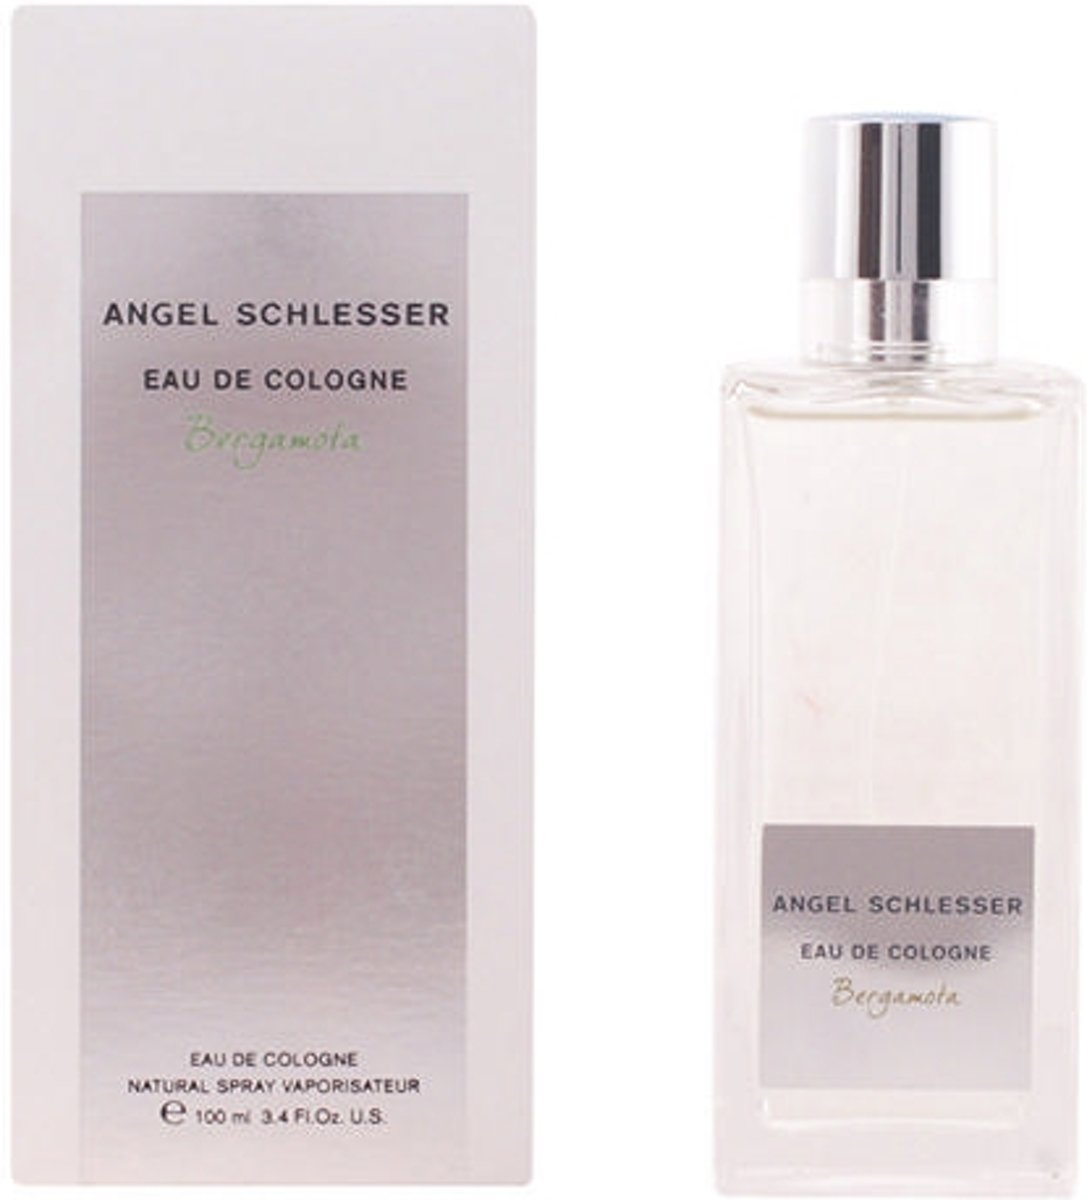 Angel Schlesser - EAU DE COLOGNE BERGAMOTA edc 100 ml